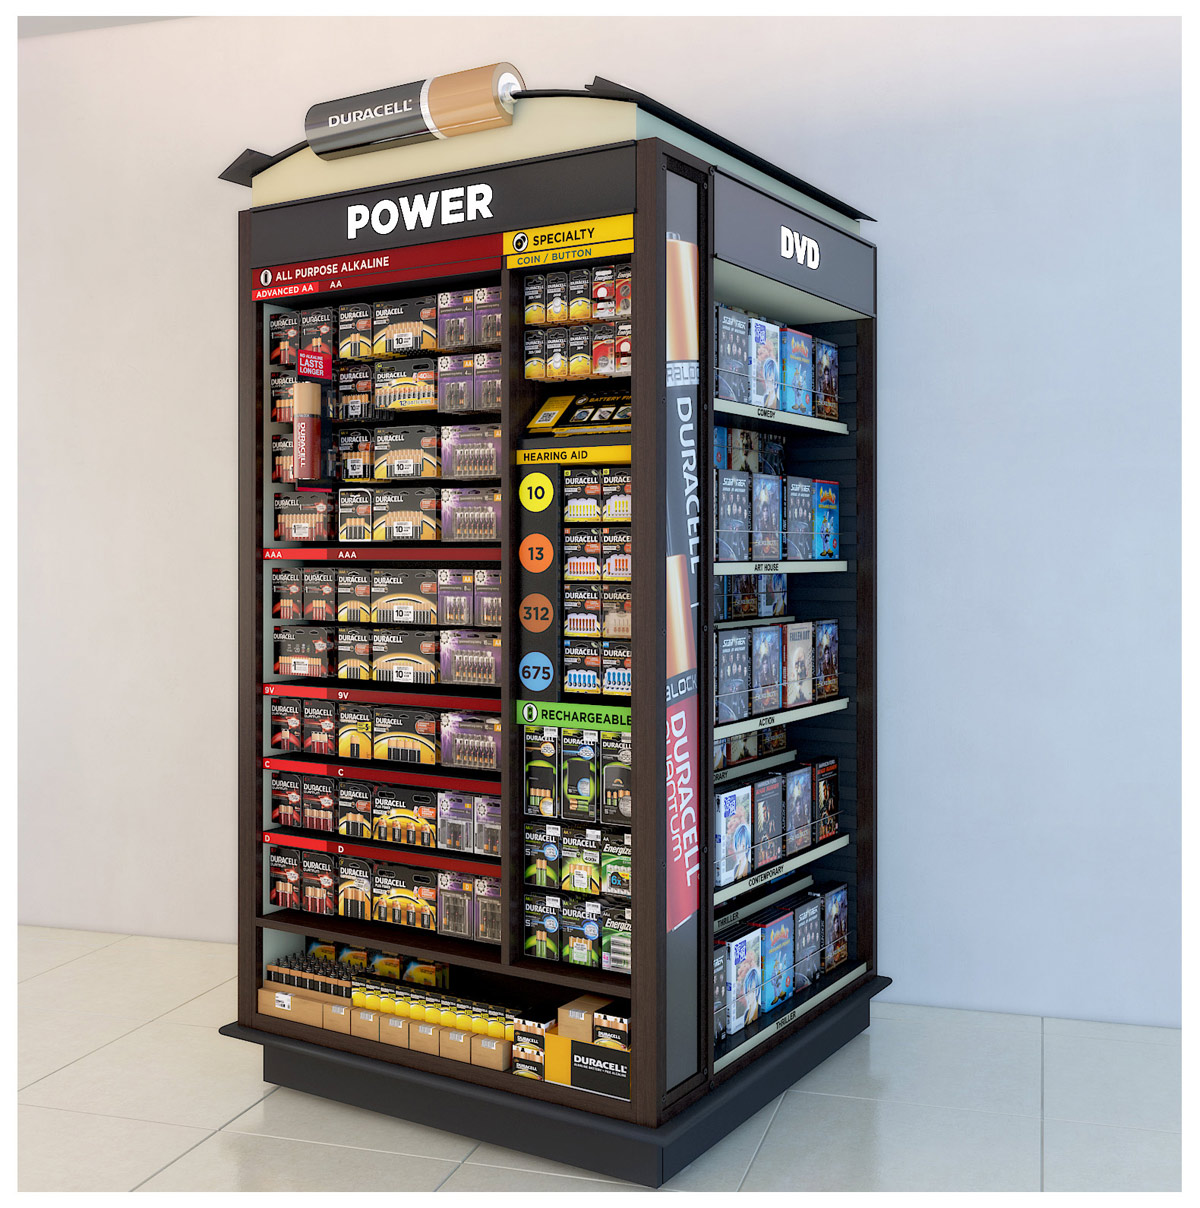 Shopping Mall Endcaps and Showcases 3D model - Wallmart Endcap for Duracell